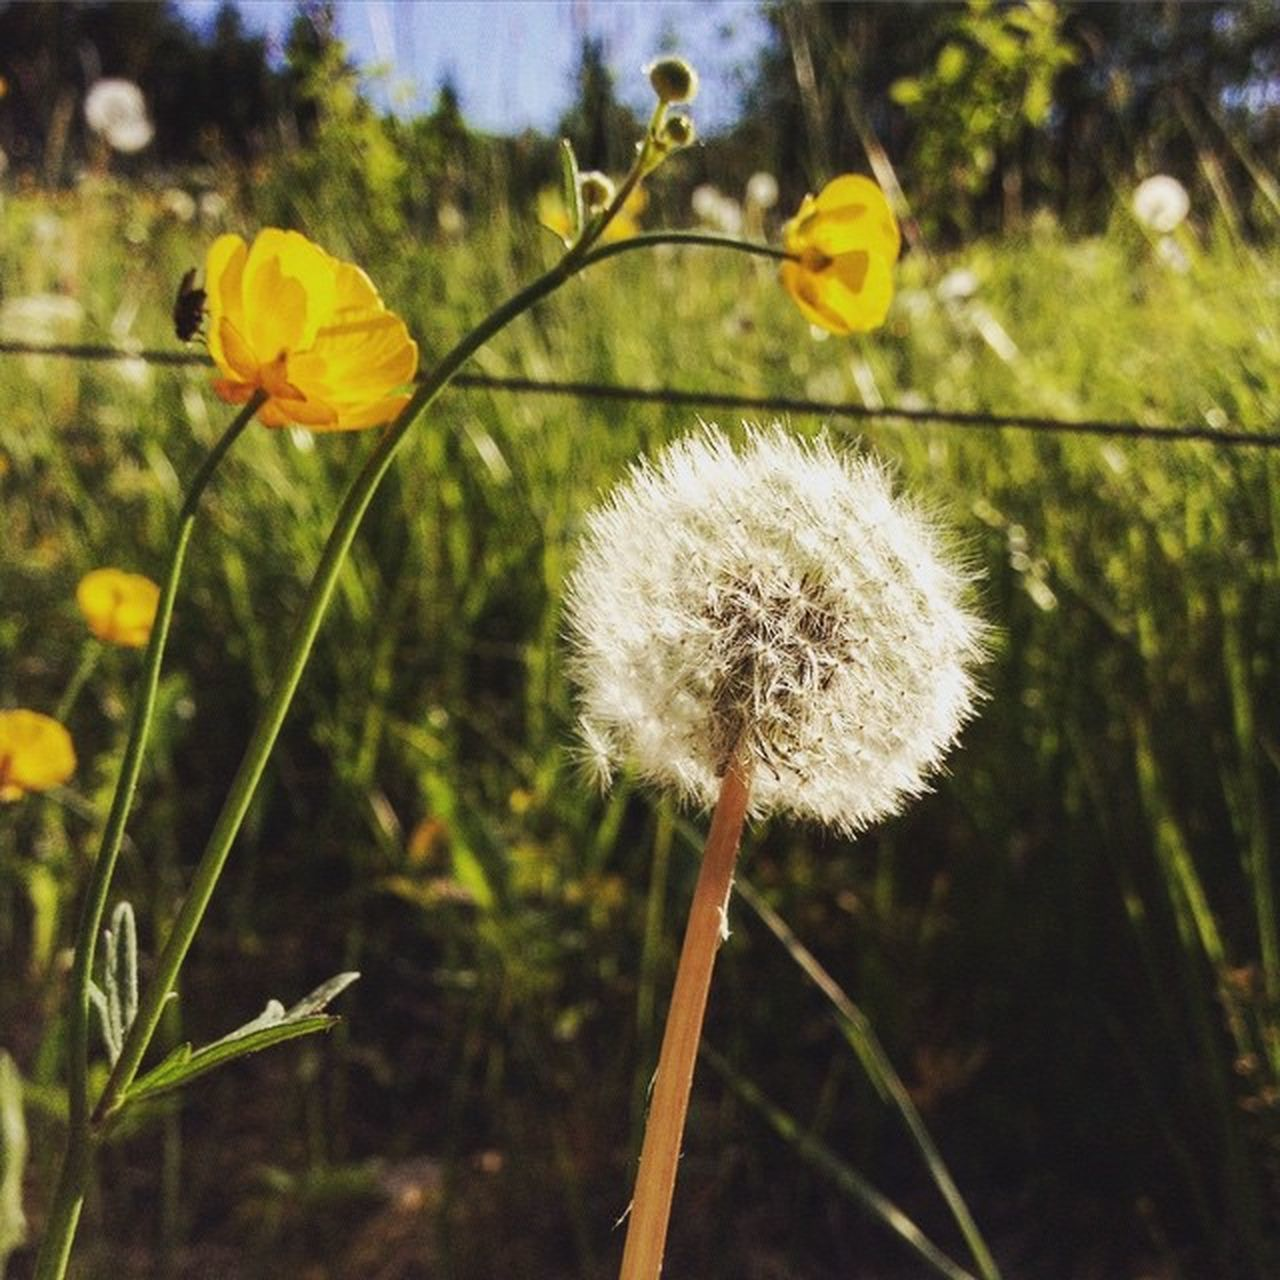 flower, nature, growth, fragility, plant, stem, beauty in nature, focus on foreground, freshness, yellow, close-up, outdoors, flower head, day, no people, blooming